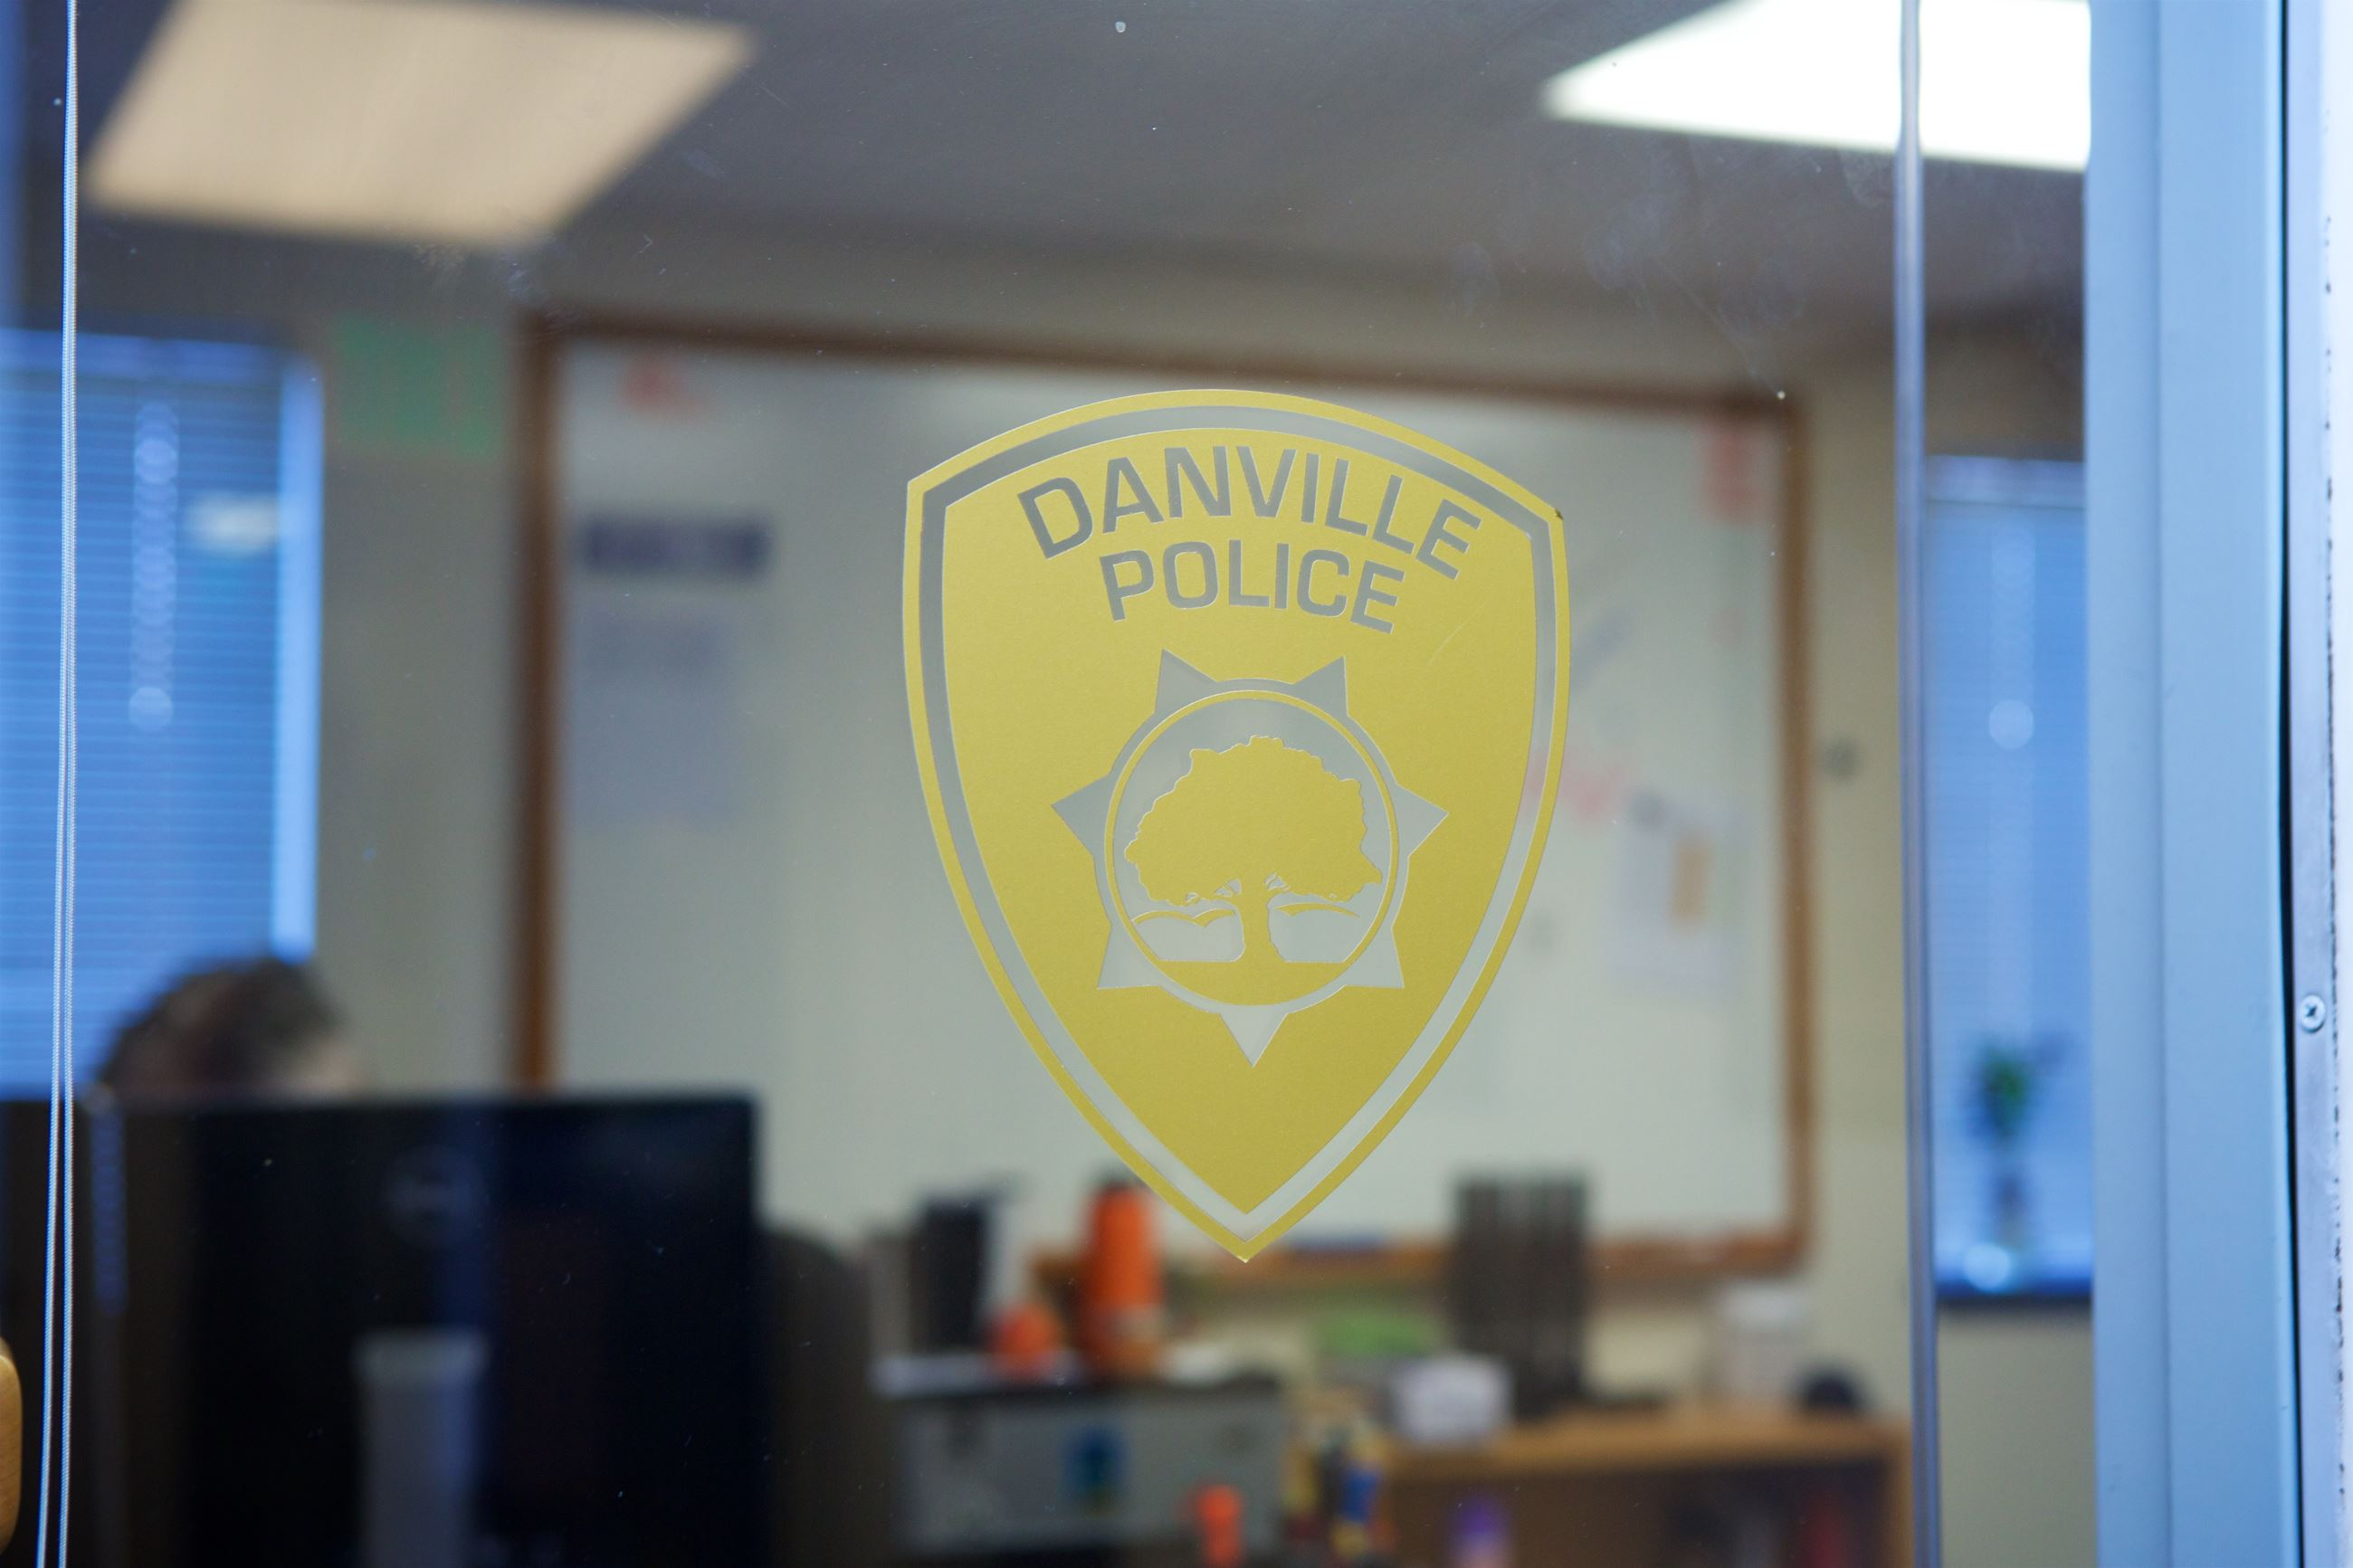 Danville Police Logo Sticker in a Window